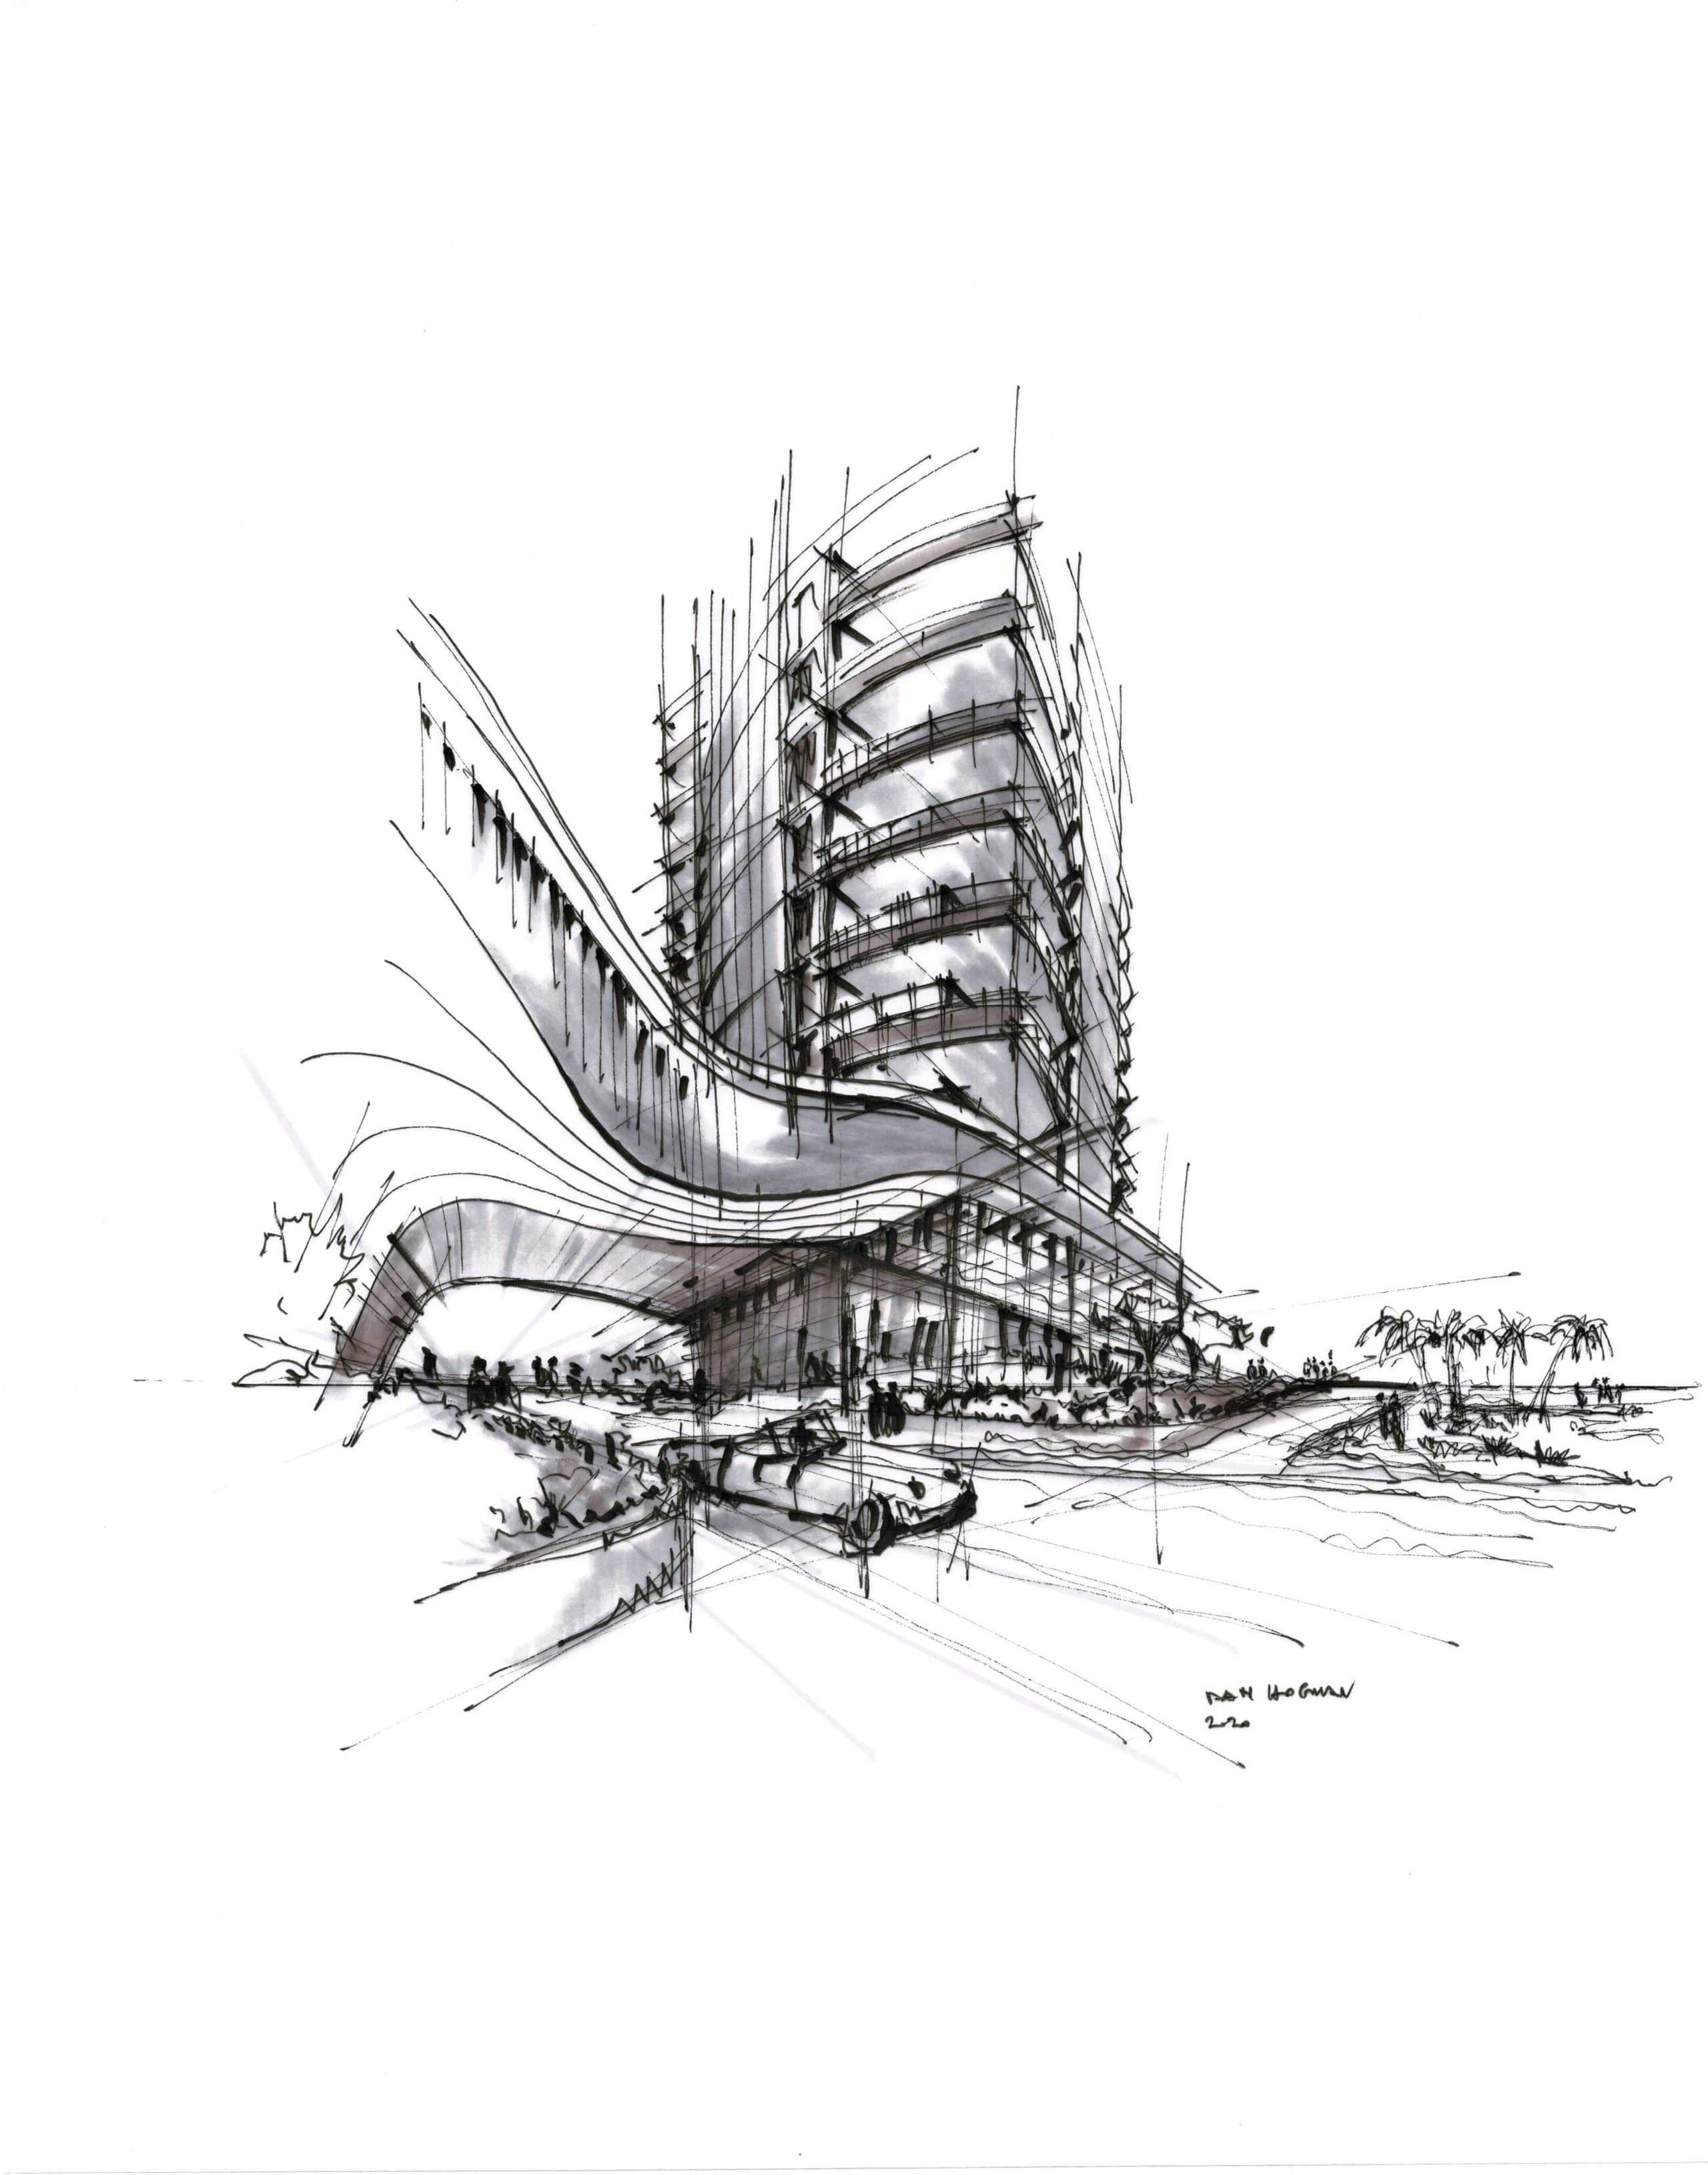 Ground view of Una Residences in Miami. Black and white sketch of luxury condominium complex in Brickell by Dan Hogman.